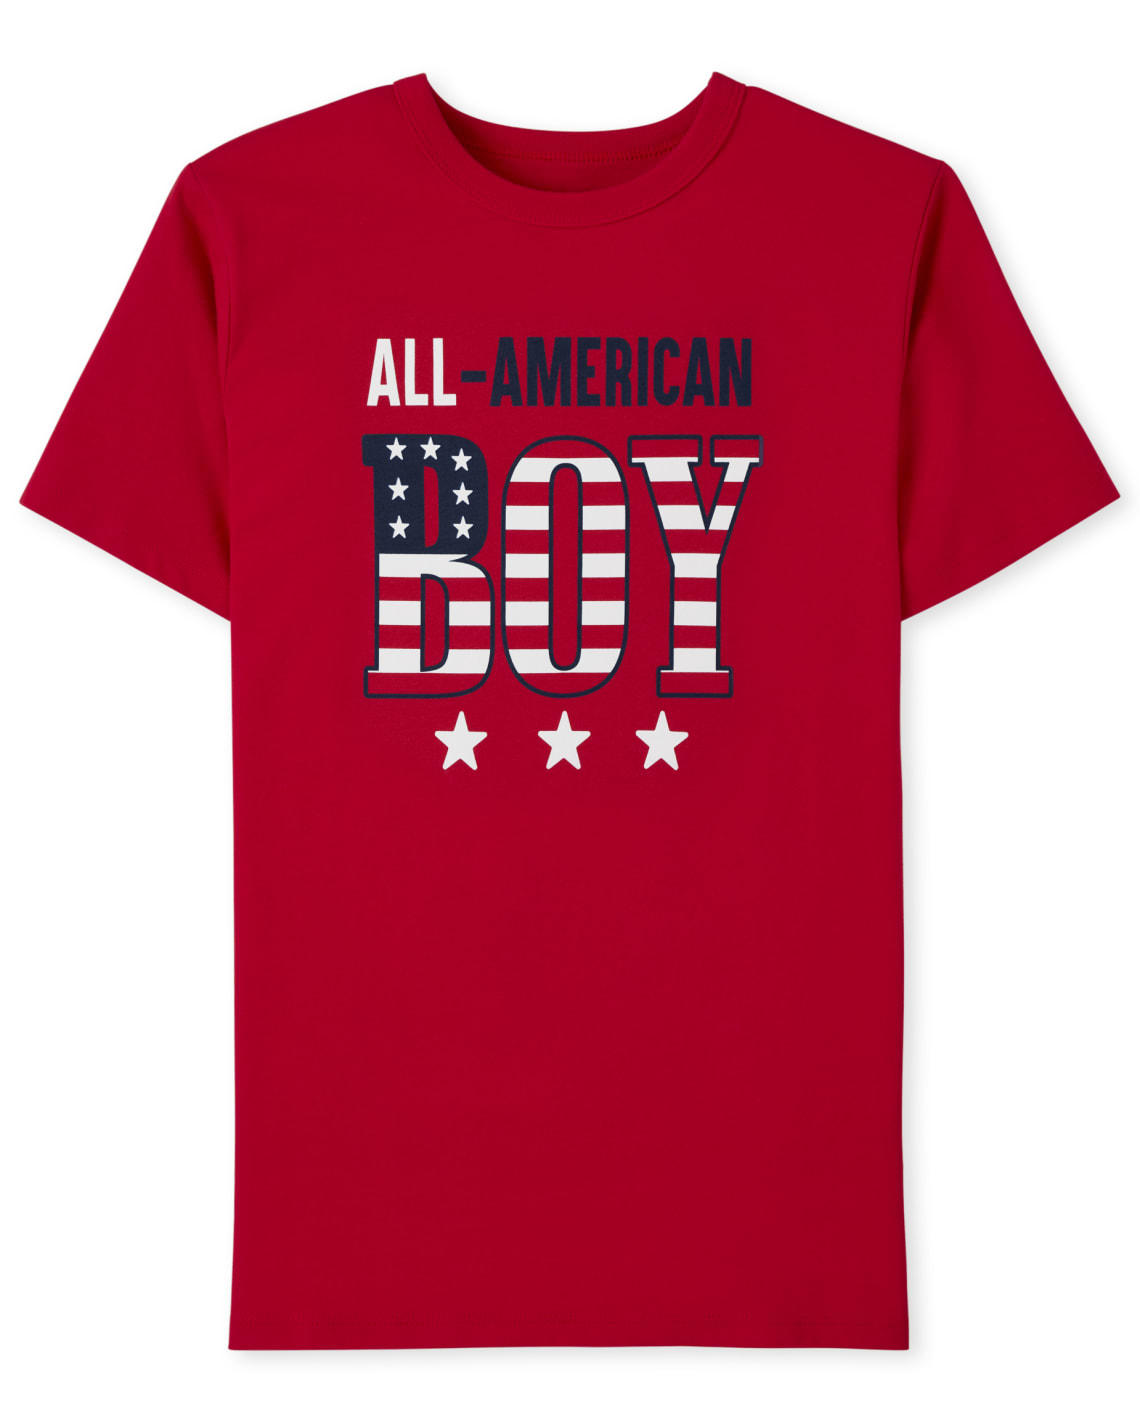 The Childrens Place Matching Family All American Graphic Boys Tee (RUBY)